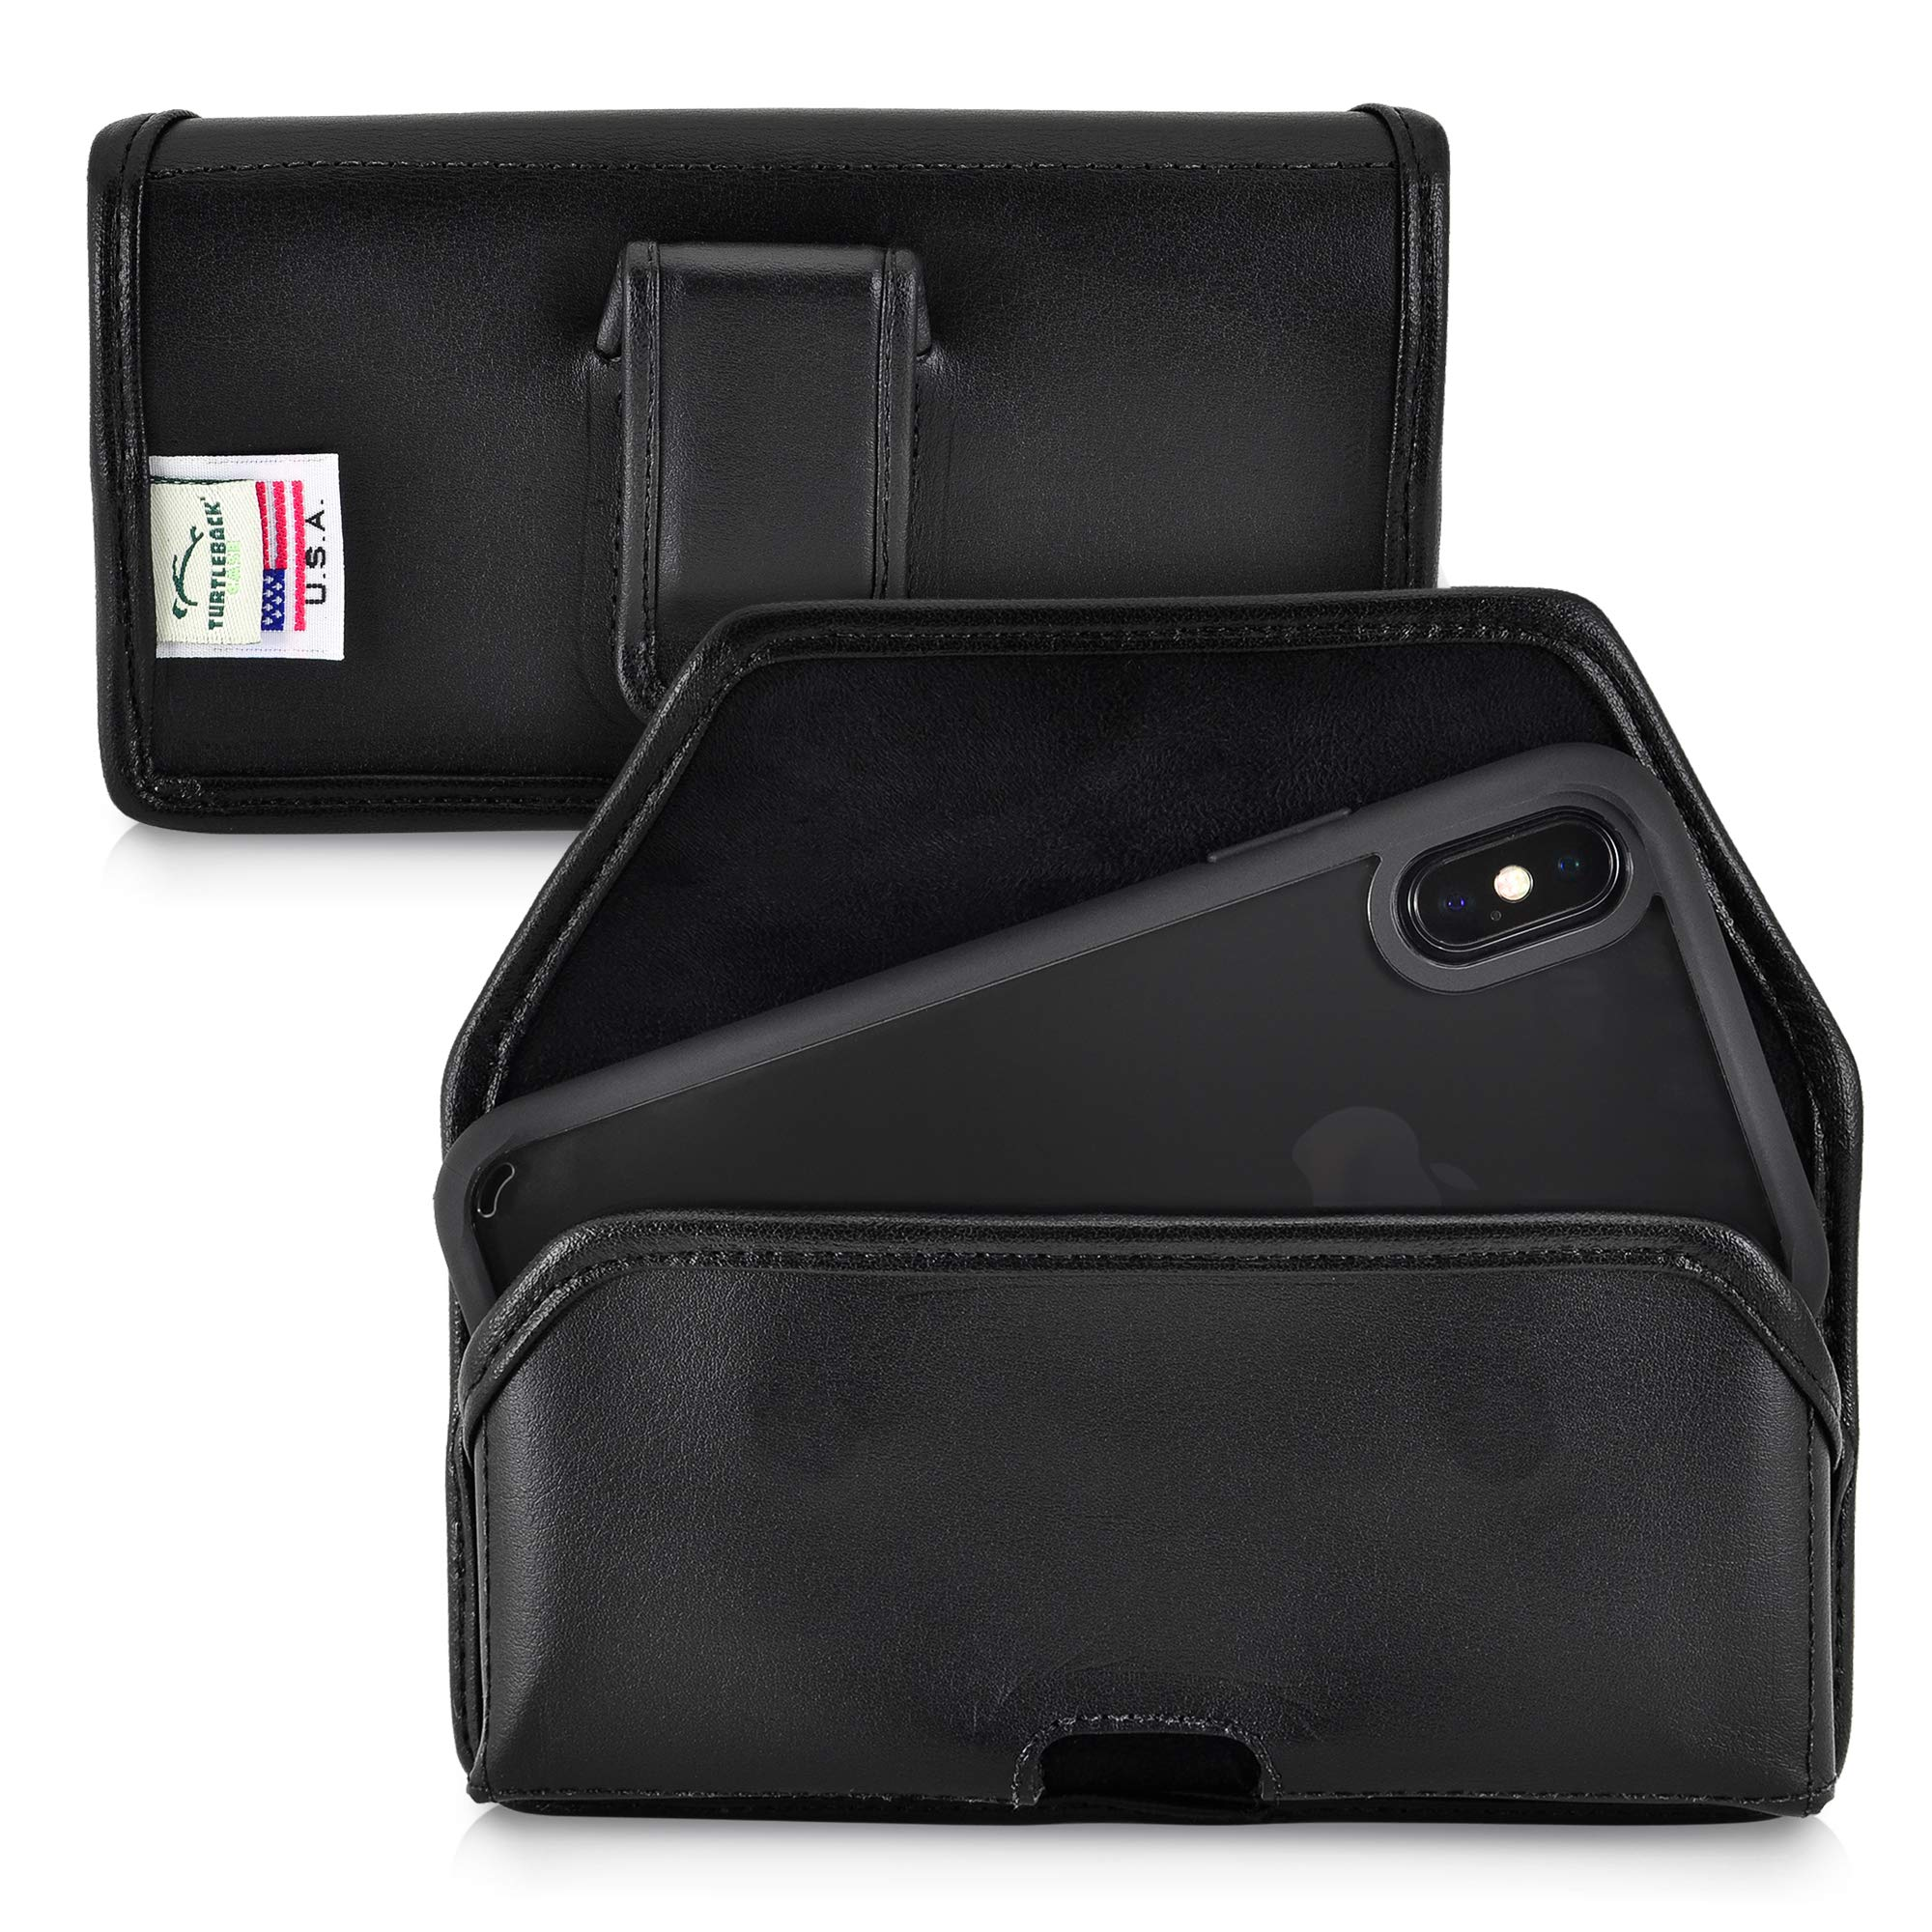 Turtleback Holster Designed for iPhone Xs (2018) / Designed for iPhone X (2017) Belt Case Black Leather Pouch with Executive Belt Clip, Horizontal Made in USA